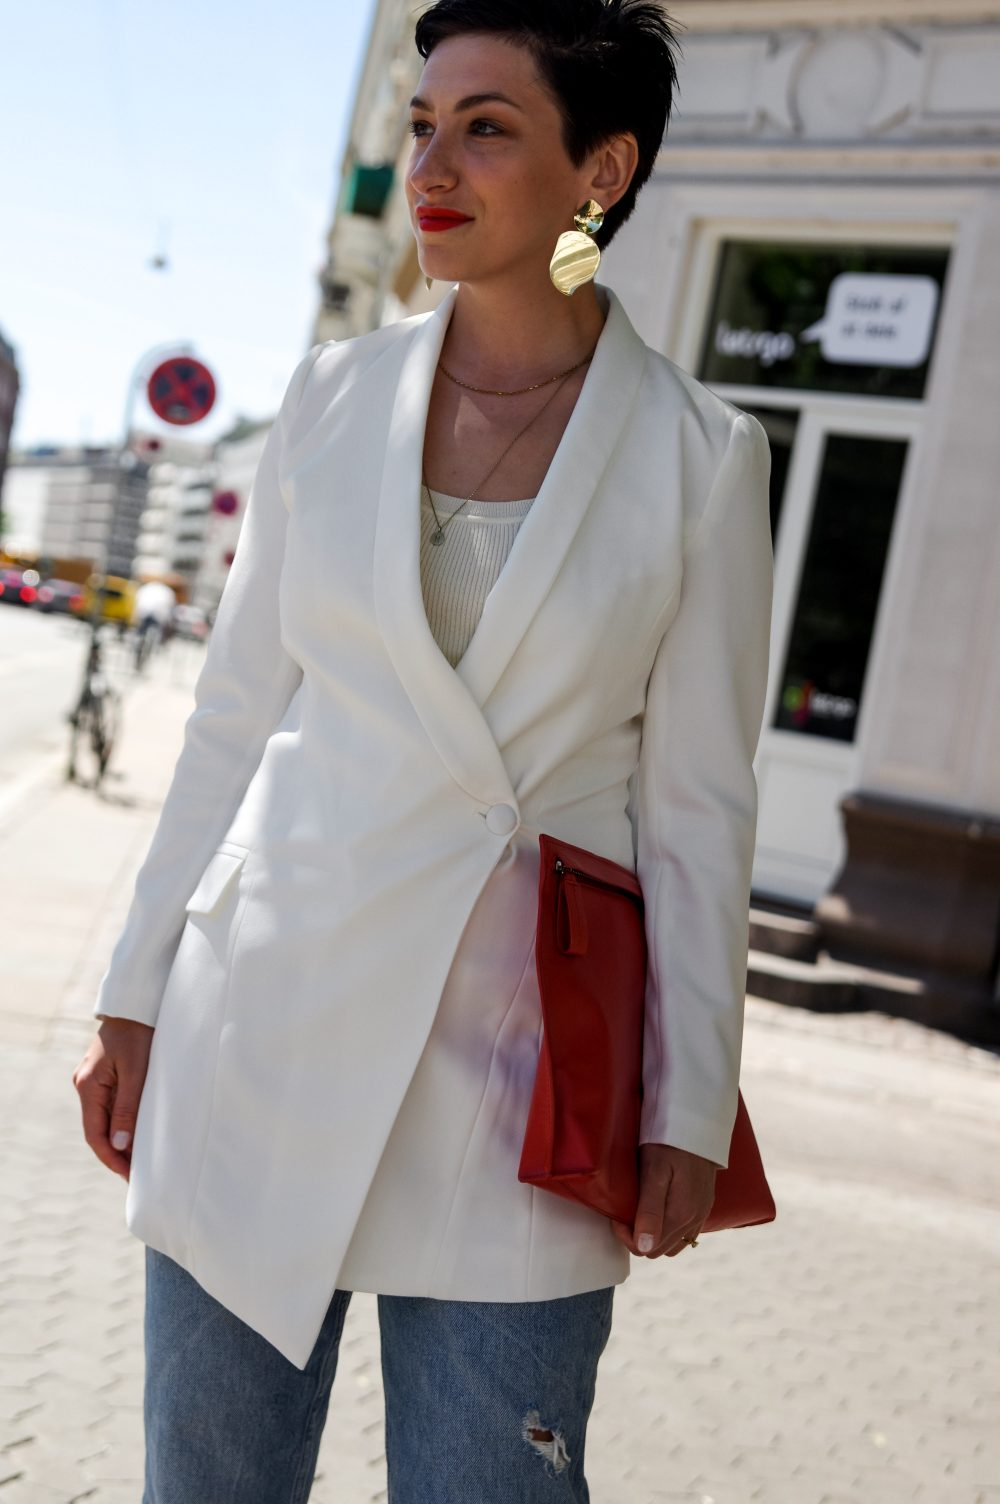 work-wear-white-blazer-spring-outfit-idea-how-to-make-a-great-first-impression-at-work-or-in-life